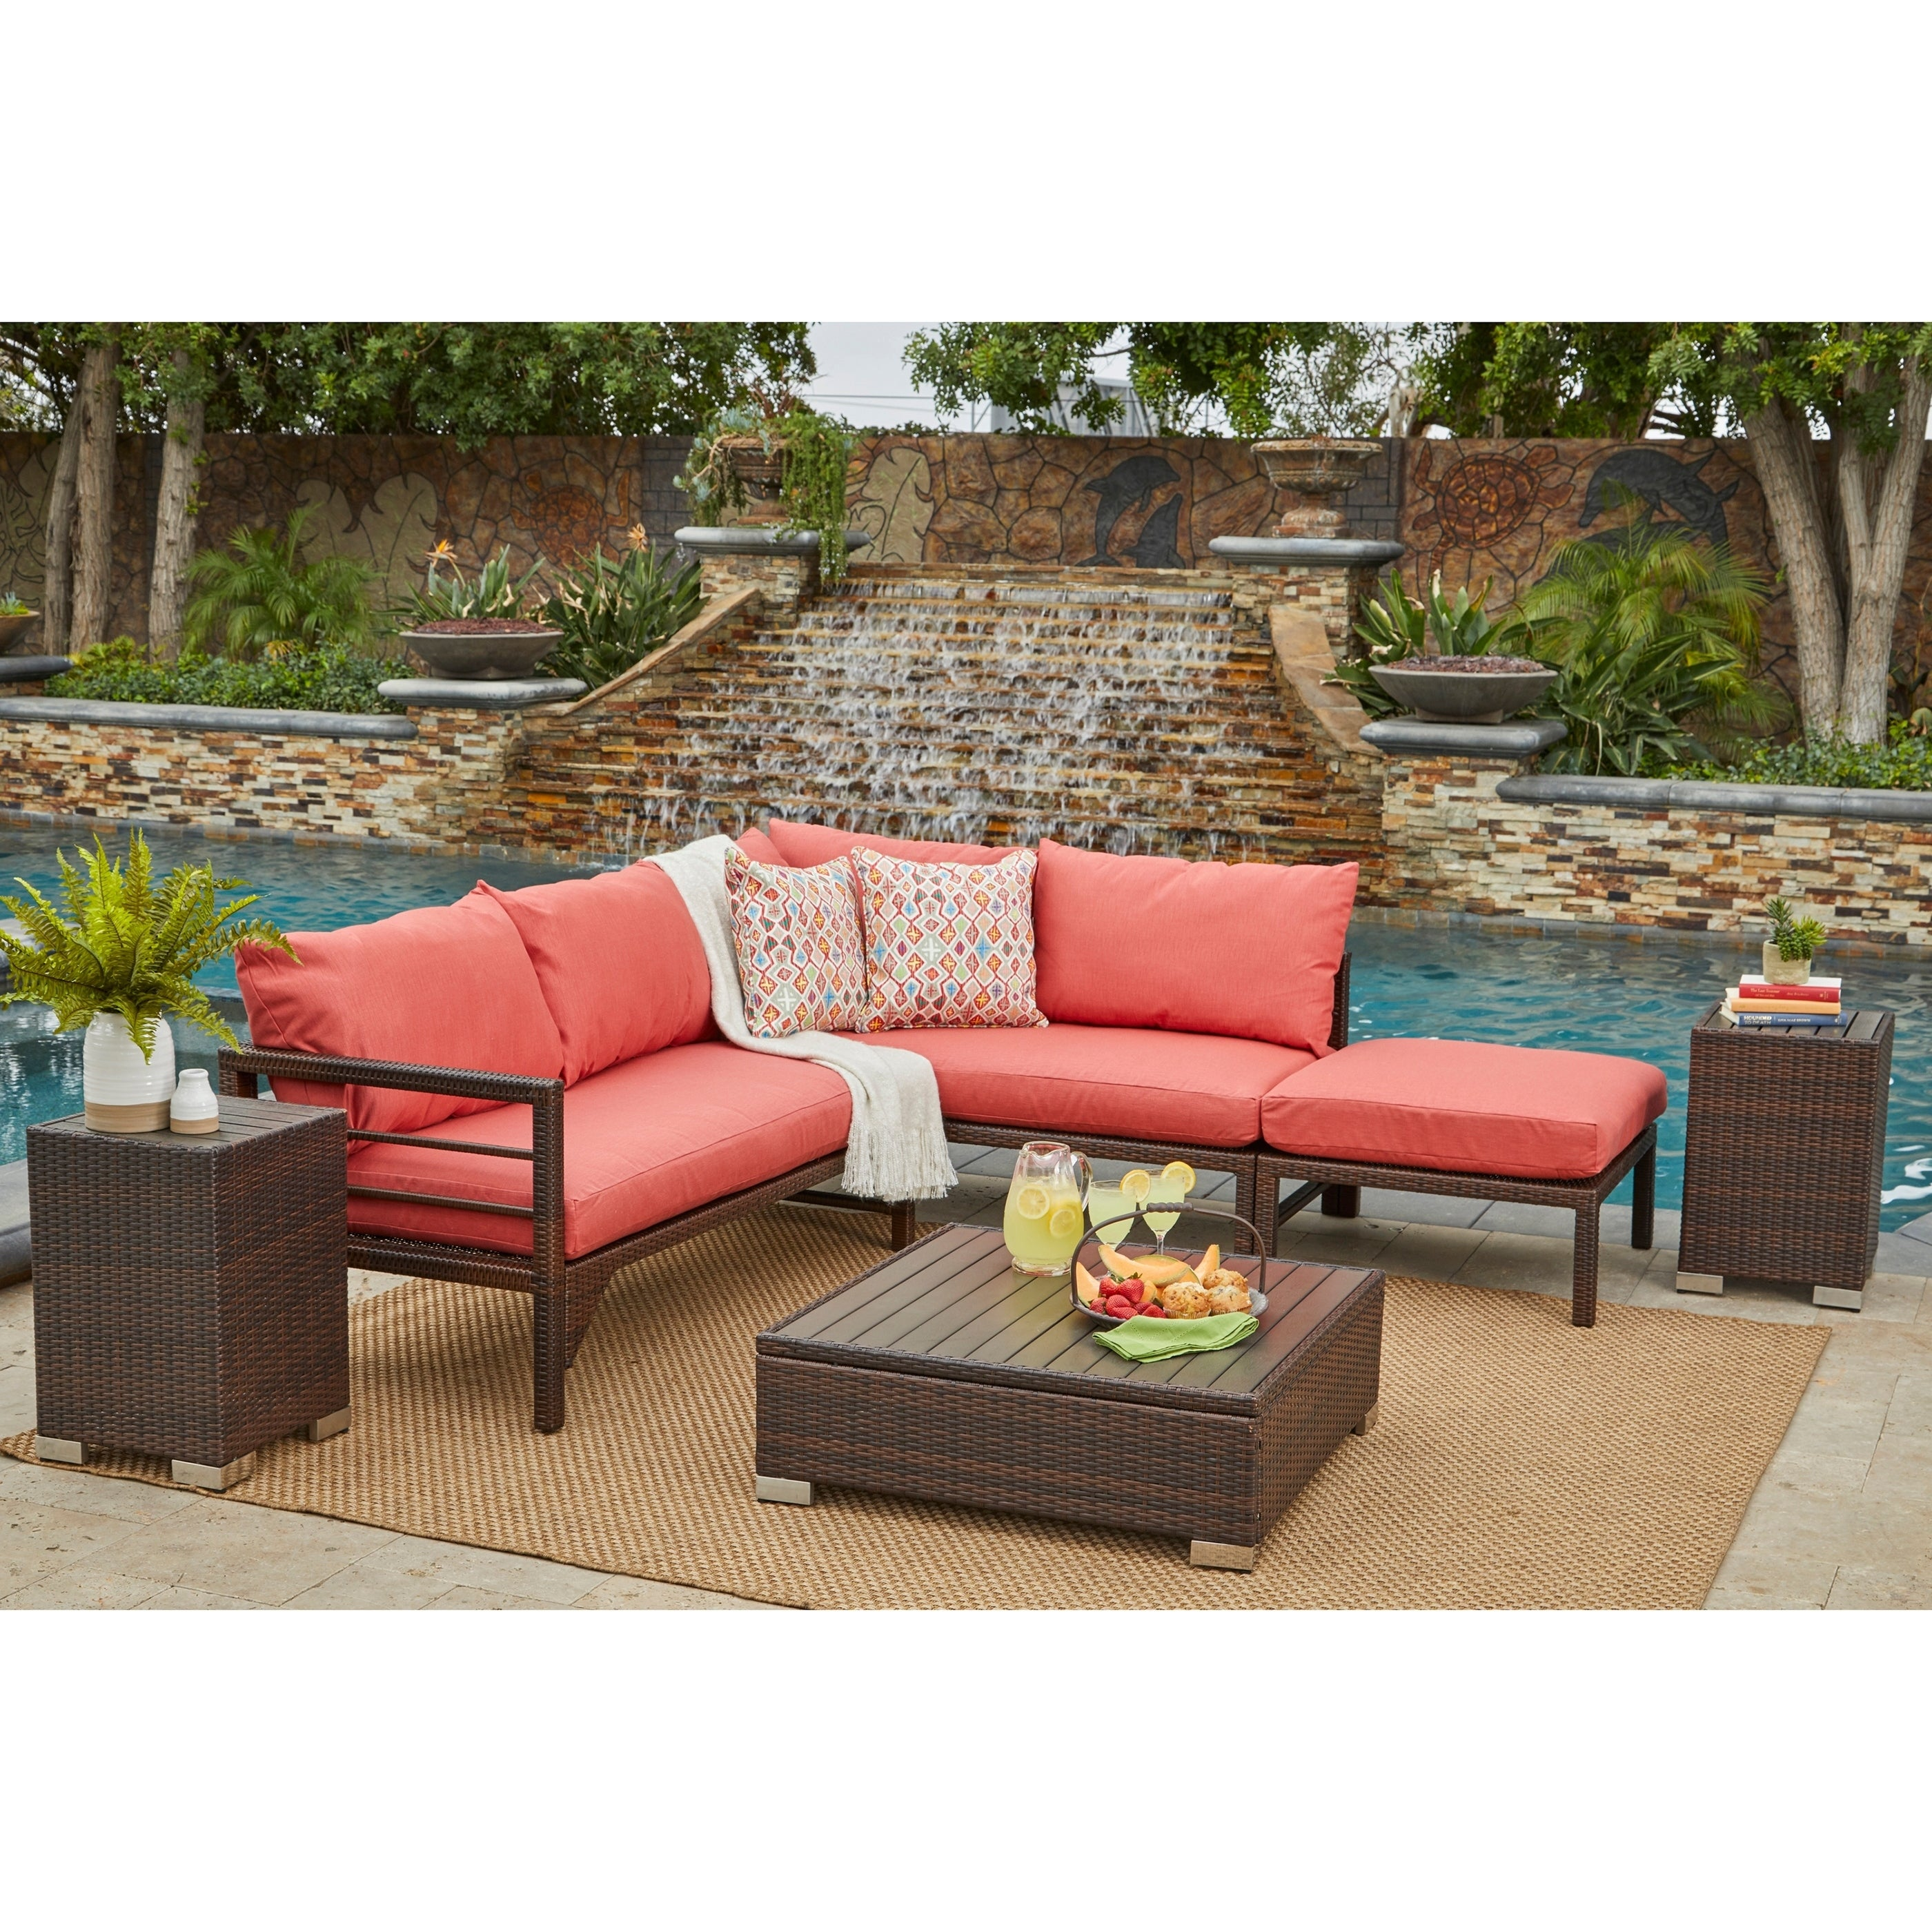 Havenside Home Stillwater Brown Indoor/Outdoor Sectional Seating Group with Coral Cushions